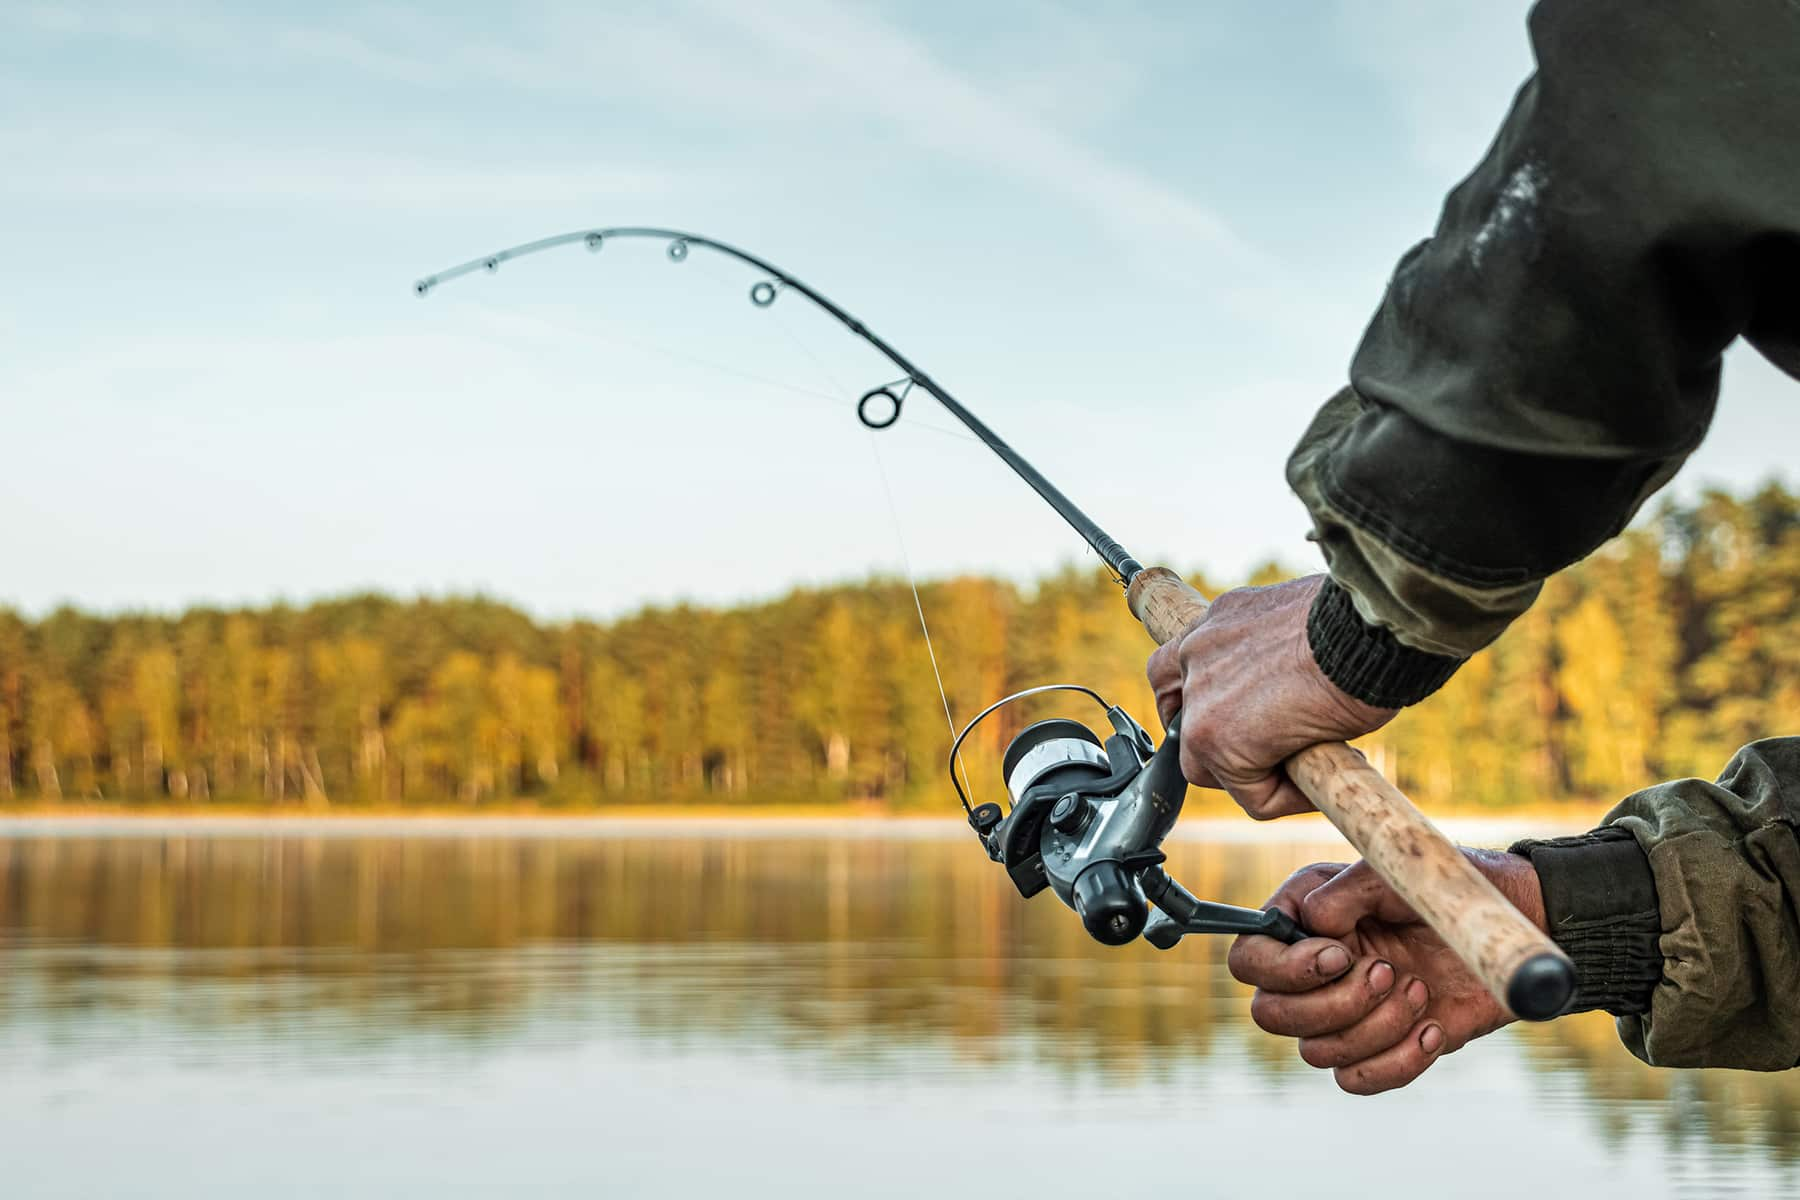 This is the cover photo for our Best Fluorocarbon fishing line article. It features a man fishing on a lake with a forest in the backdrop.